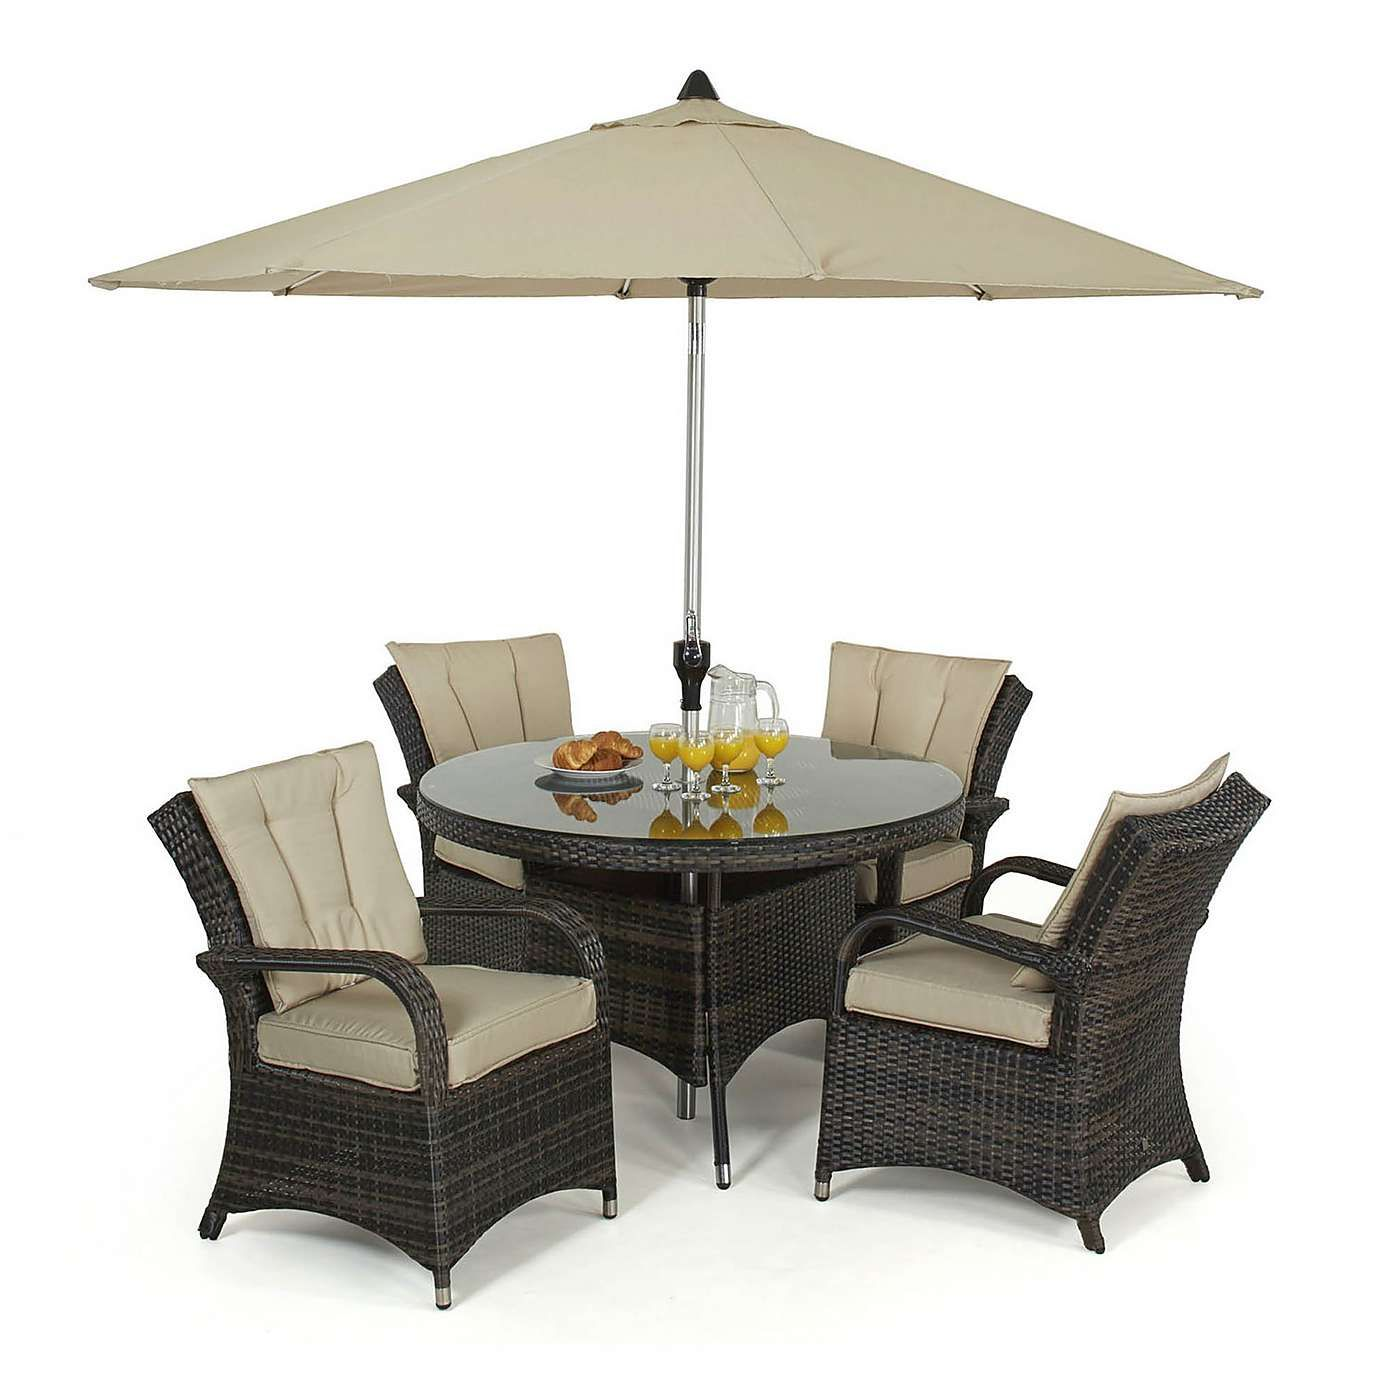 Finished In Brown Weather Resistant Woven Rattan This Texas Dining Set From Maze Seats Four People Around A Circular Glass Top Table